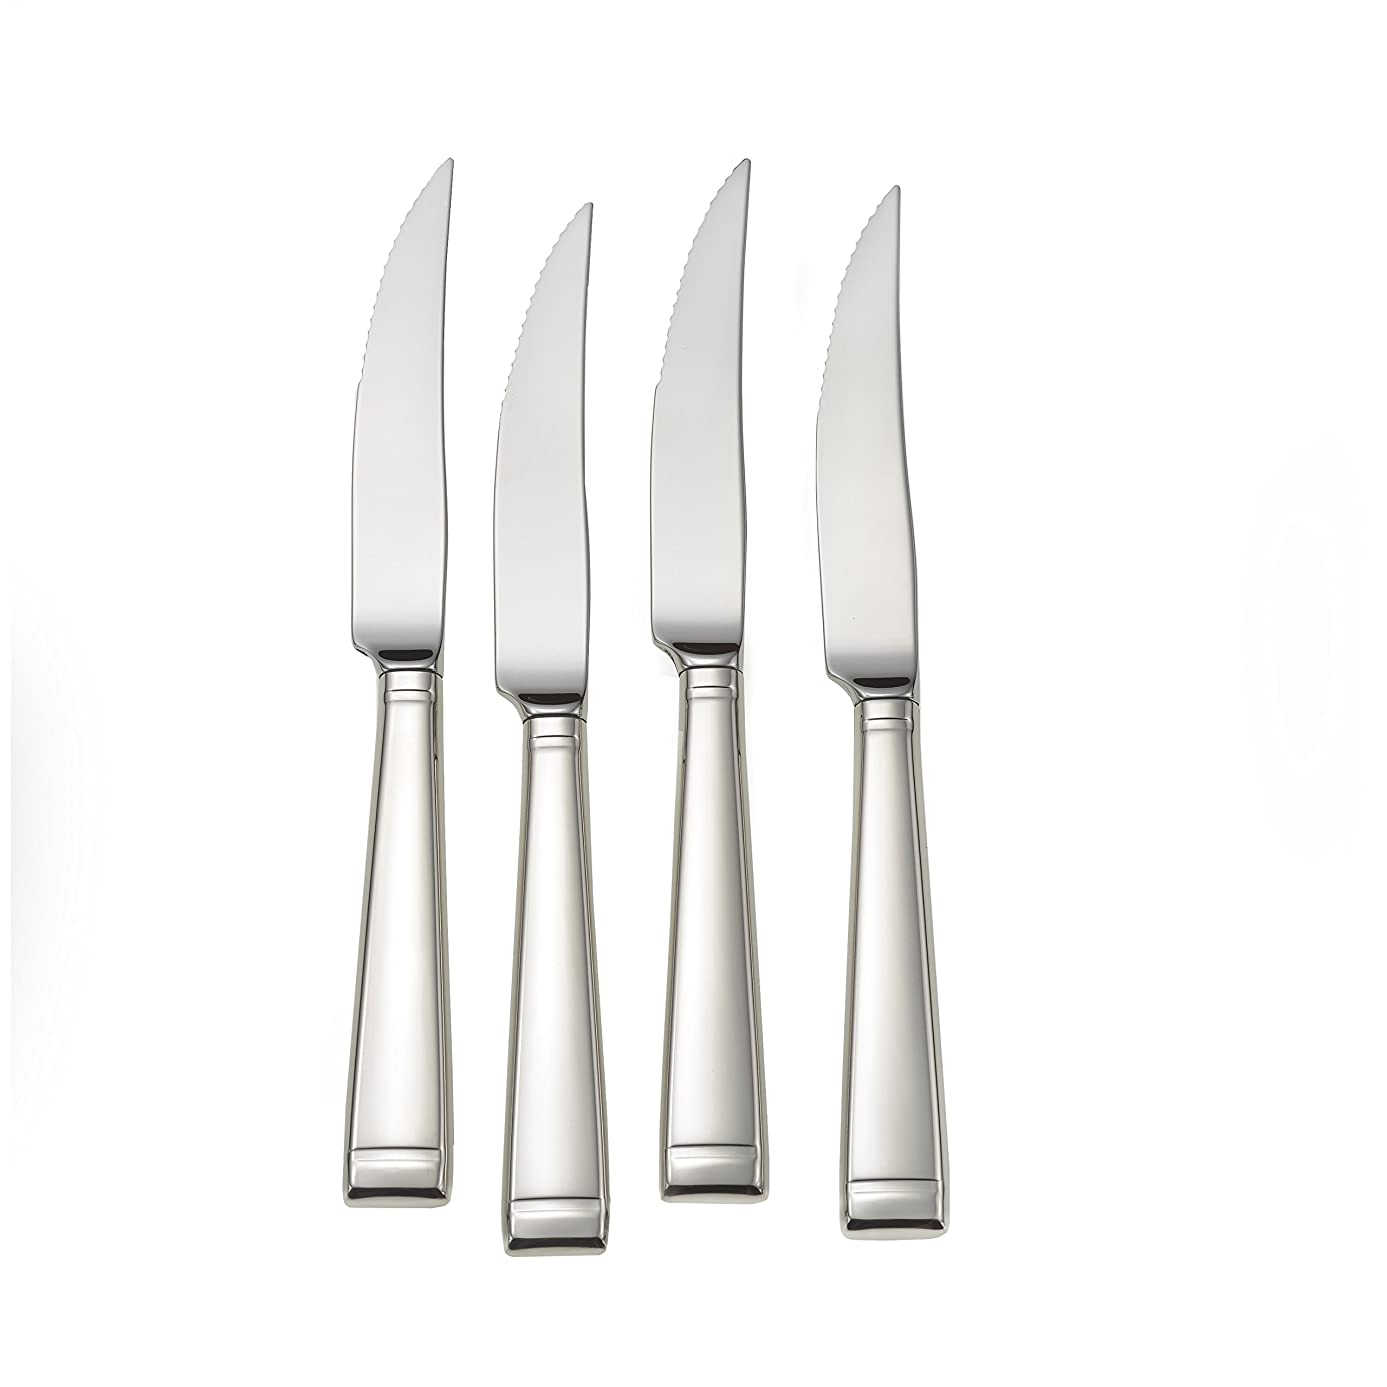 Liberty Tabletop Steak Knife set of 4 Special Offer Made in USA